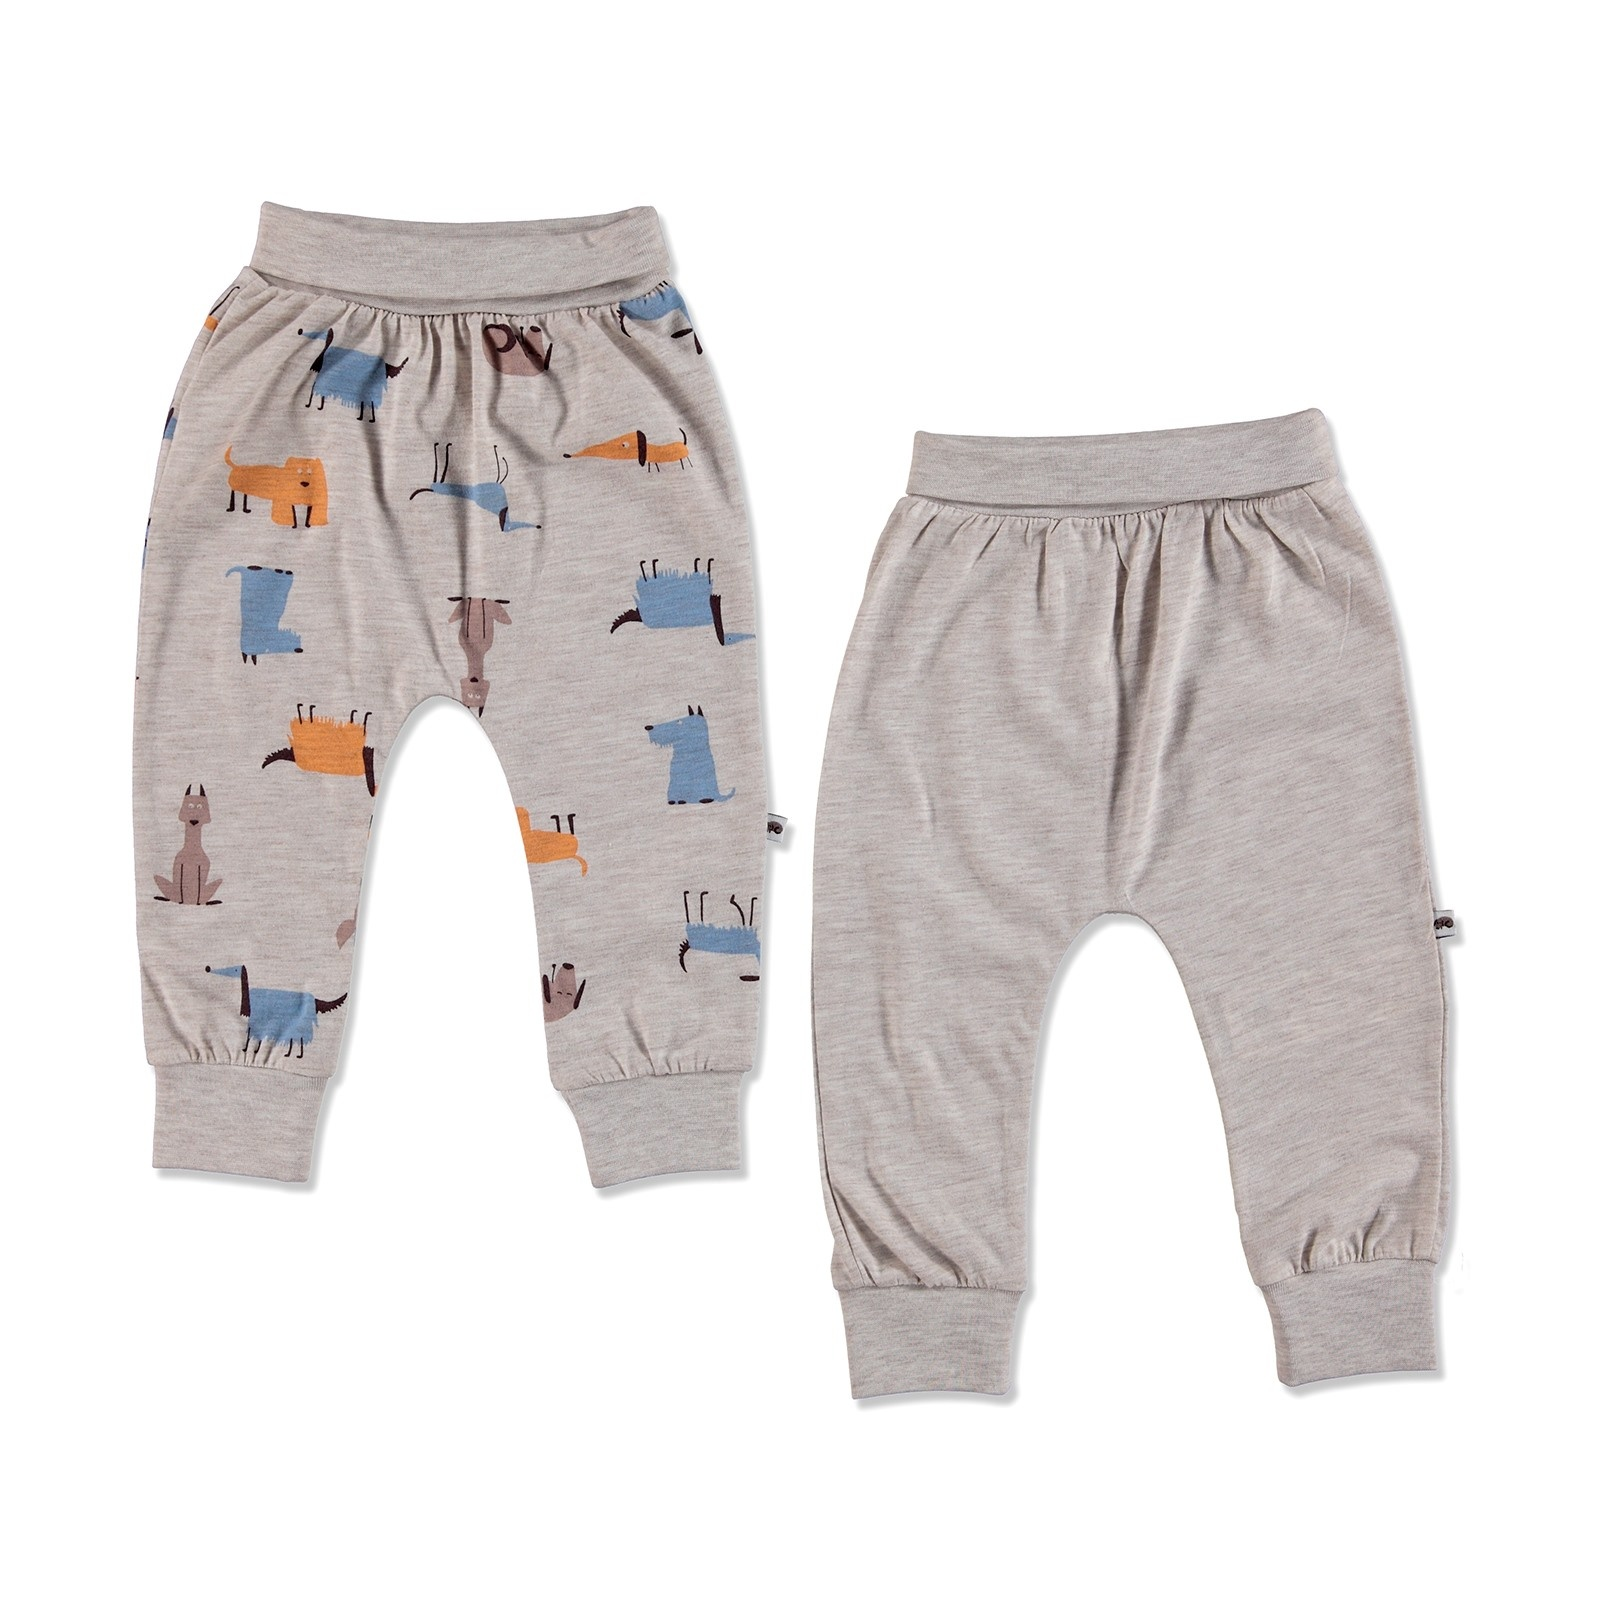 Ebebek Carmin Baby Summer Boy Dog Printed Supreme Rib Trouser 2 Pcs